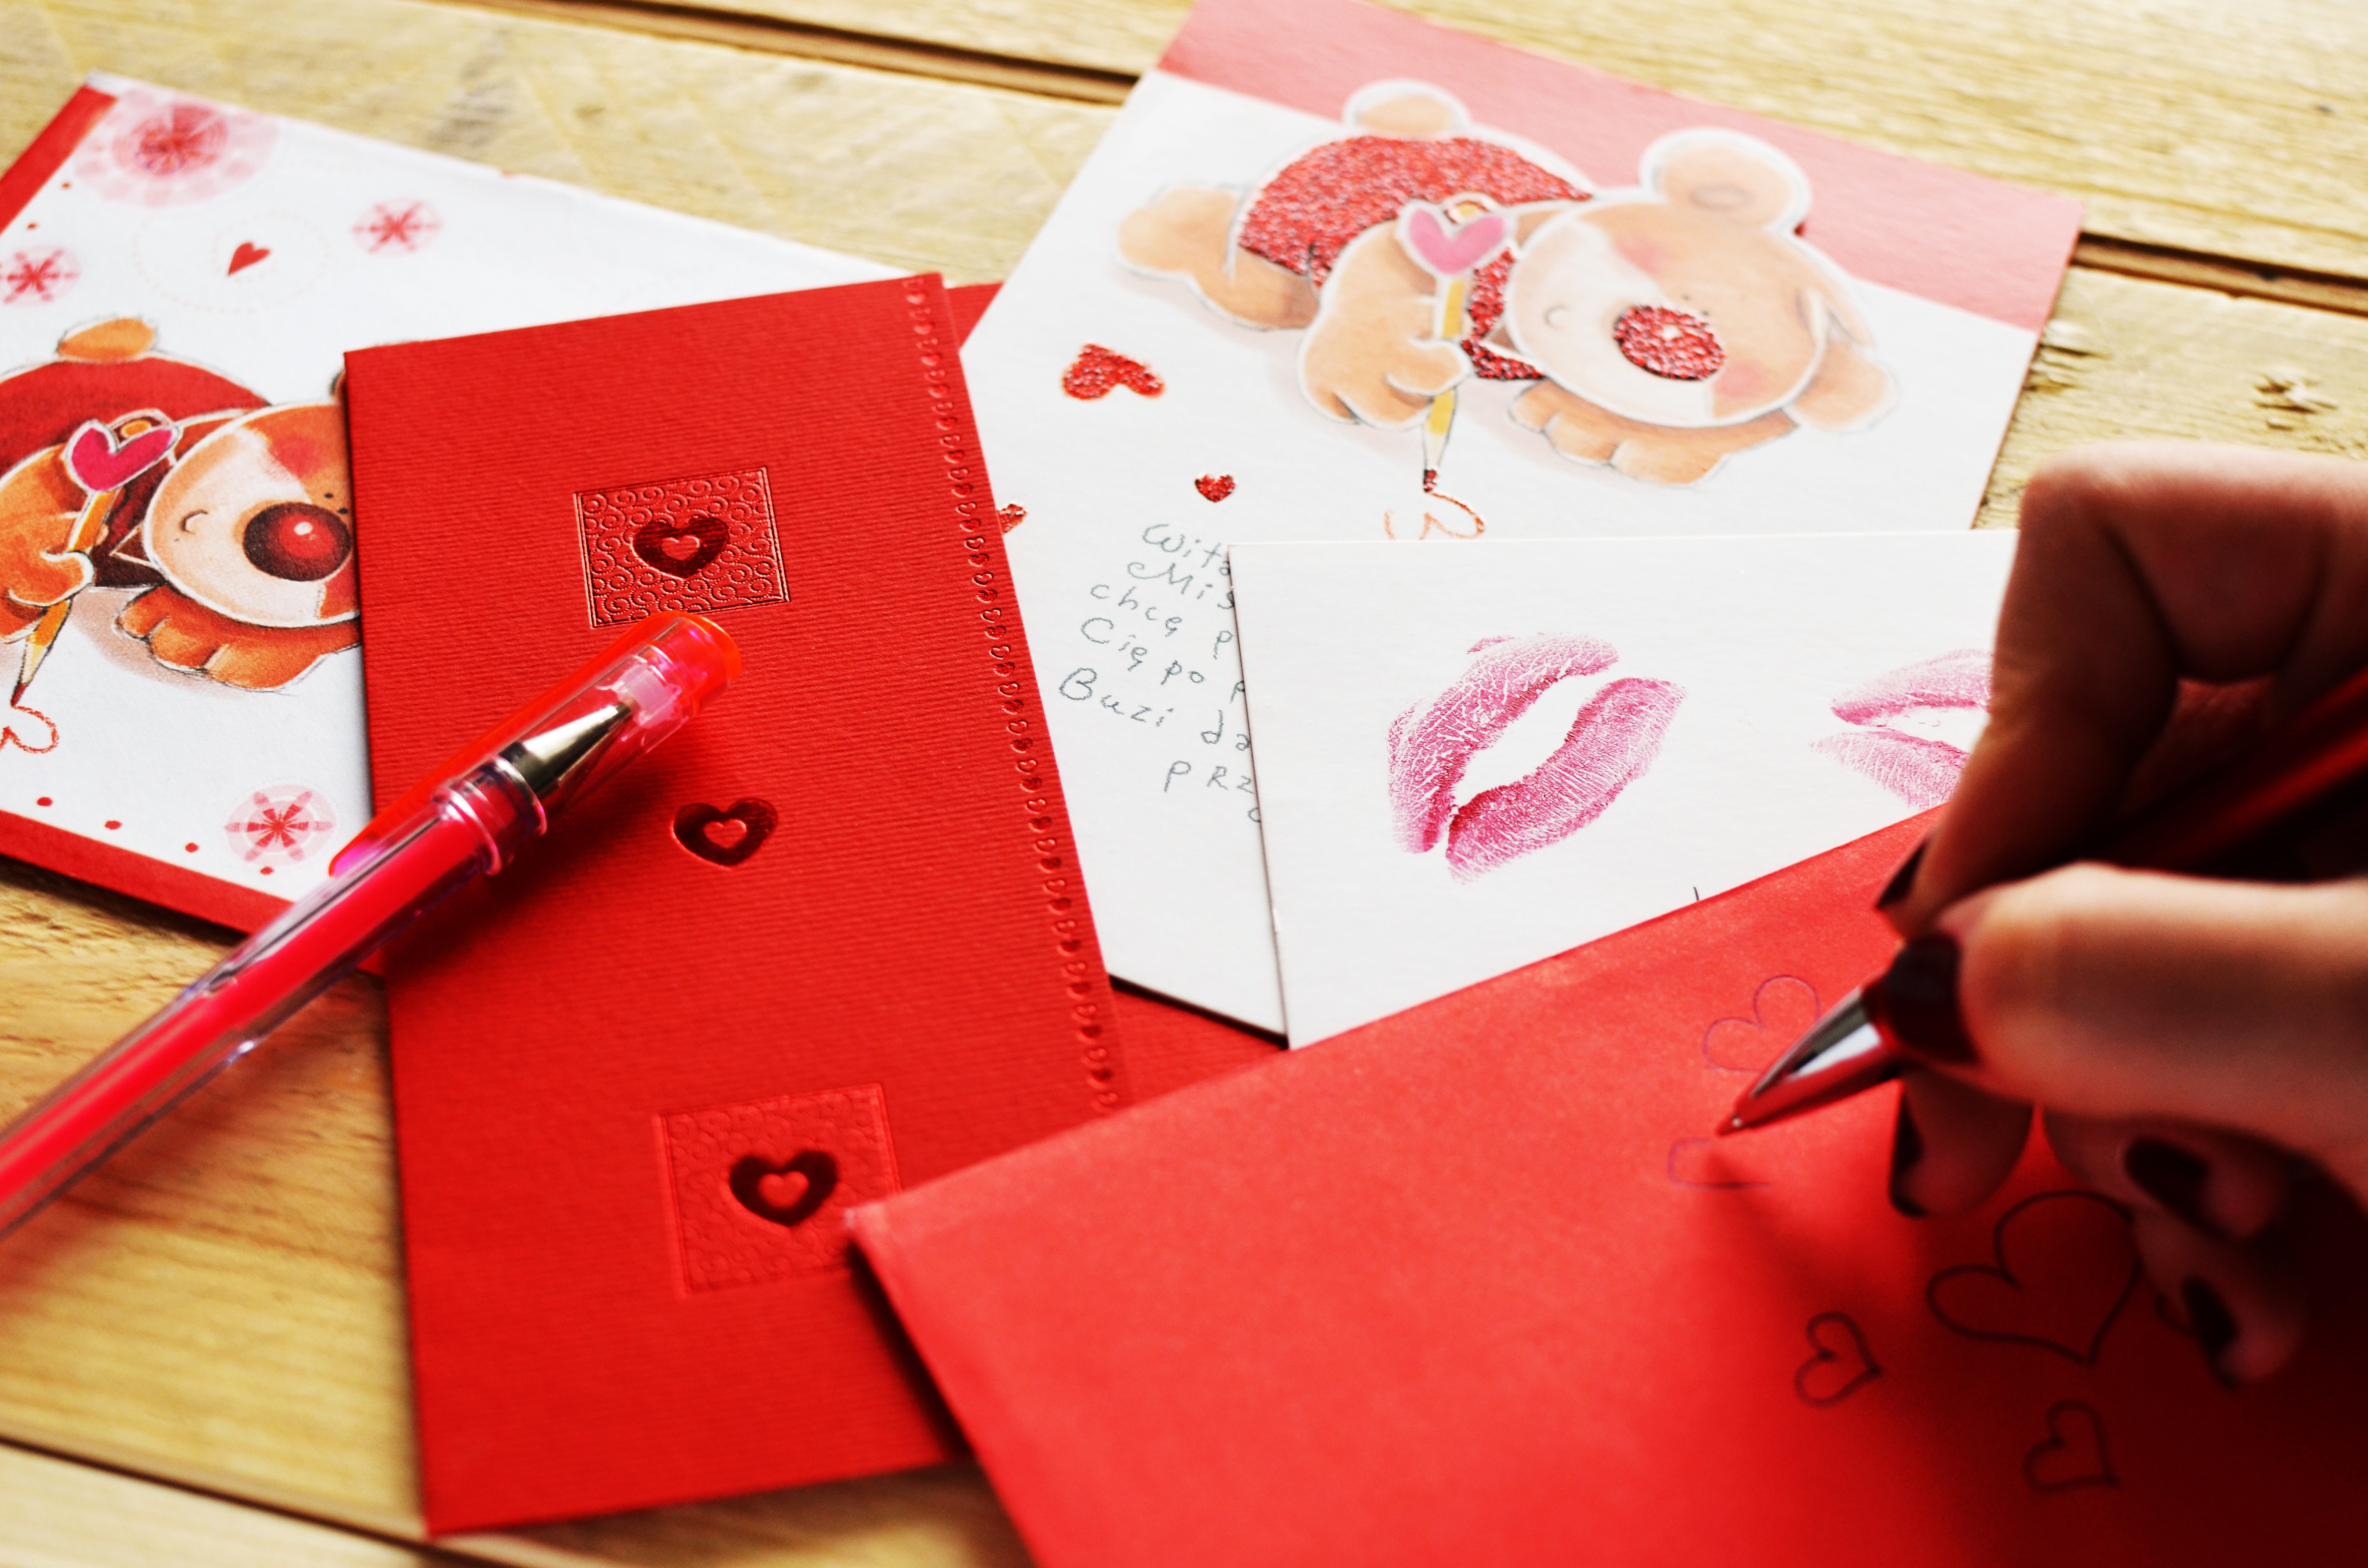 Cover Letters and Love Letters